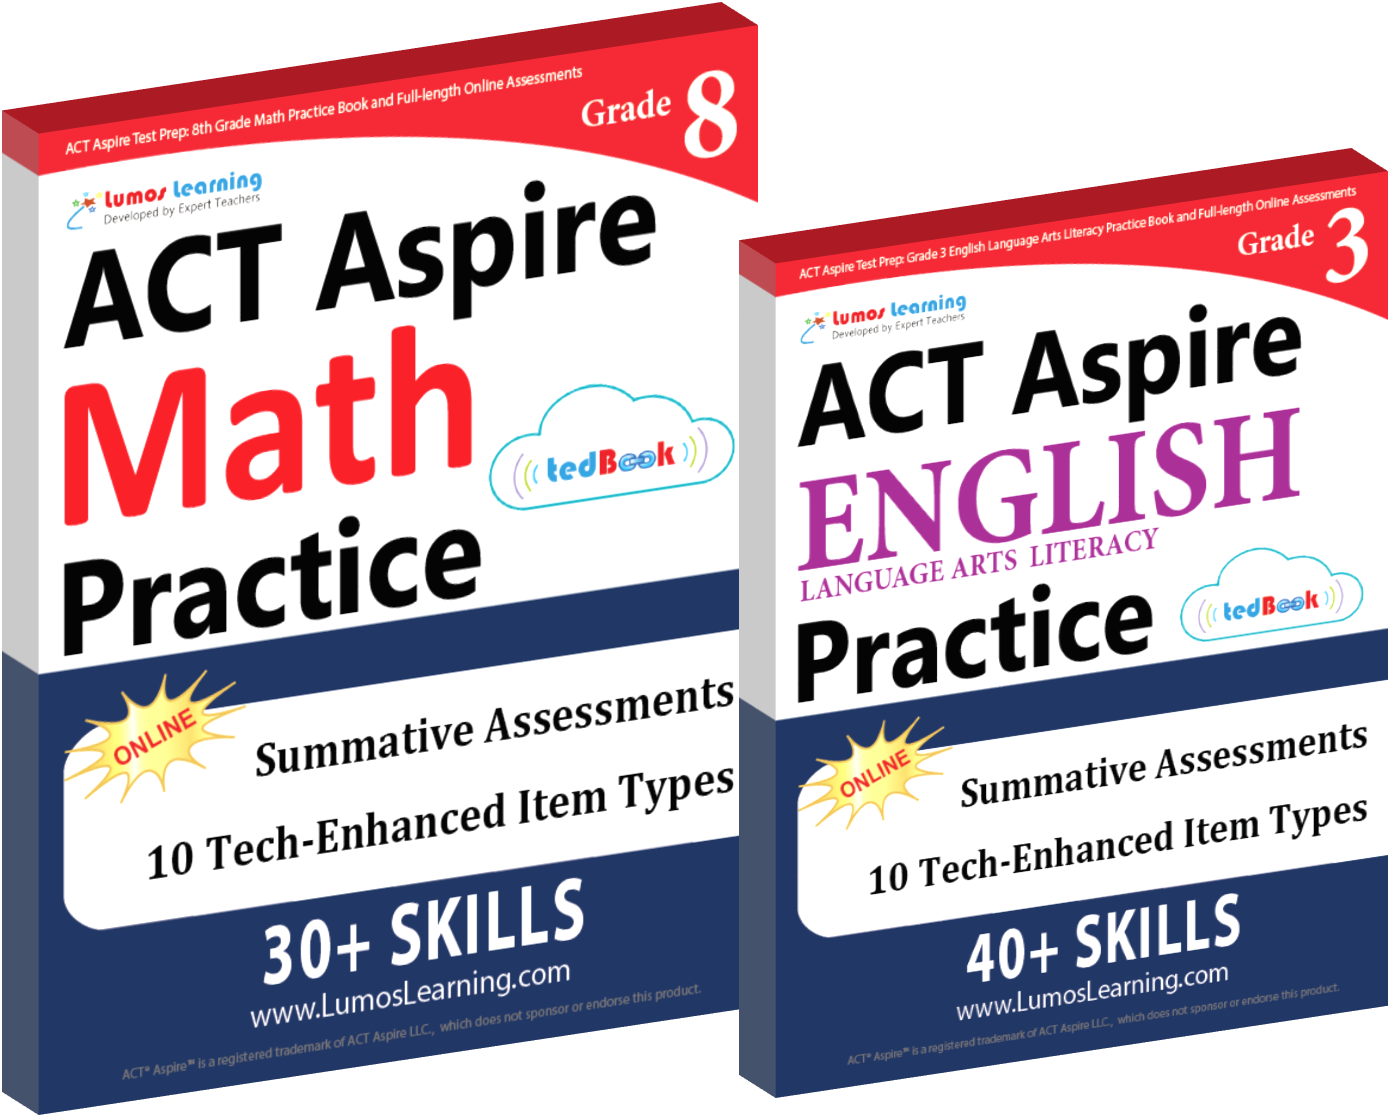 ACT Aspire practice test online workbook